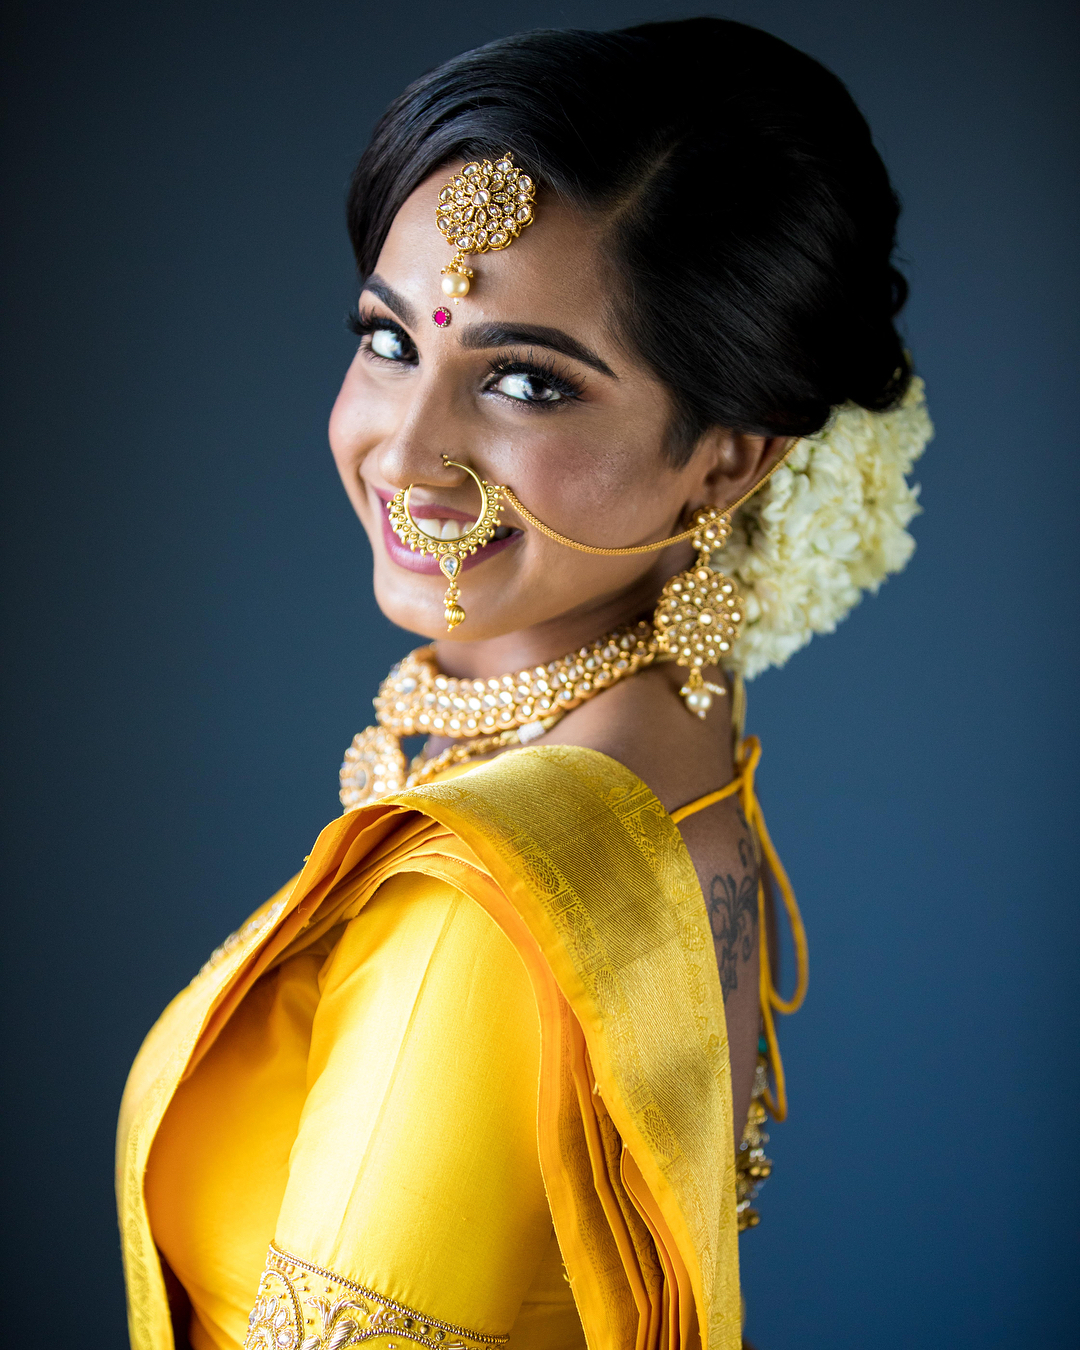 south Indian bridal gold nose ring with a tear-drop stone